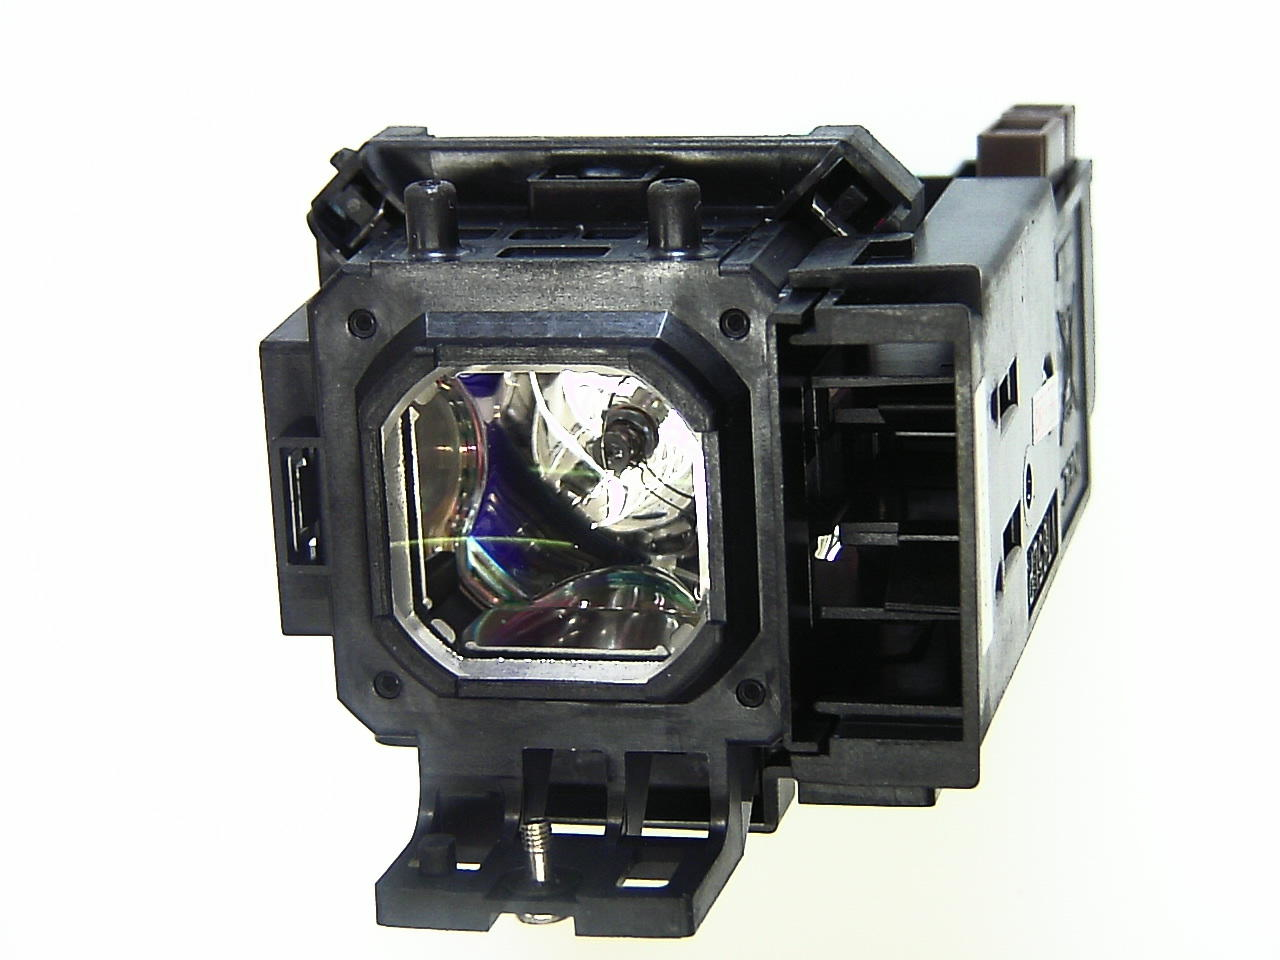 V7 VPL1161-1E PROJECTOR LAMP FOR SELECTED PROJECTORS BY DUKANE, CANON, NEC,